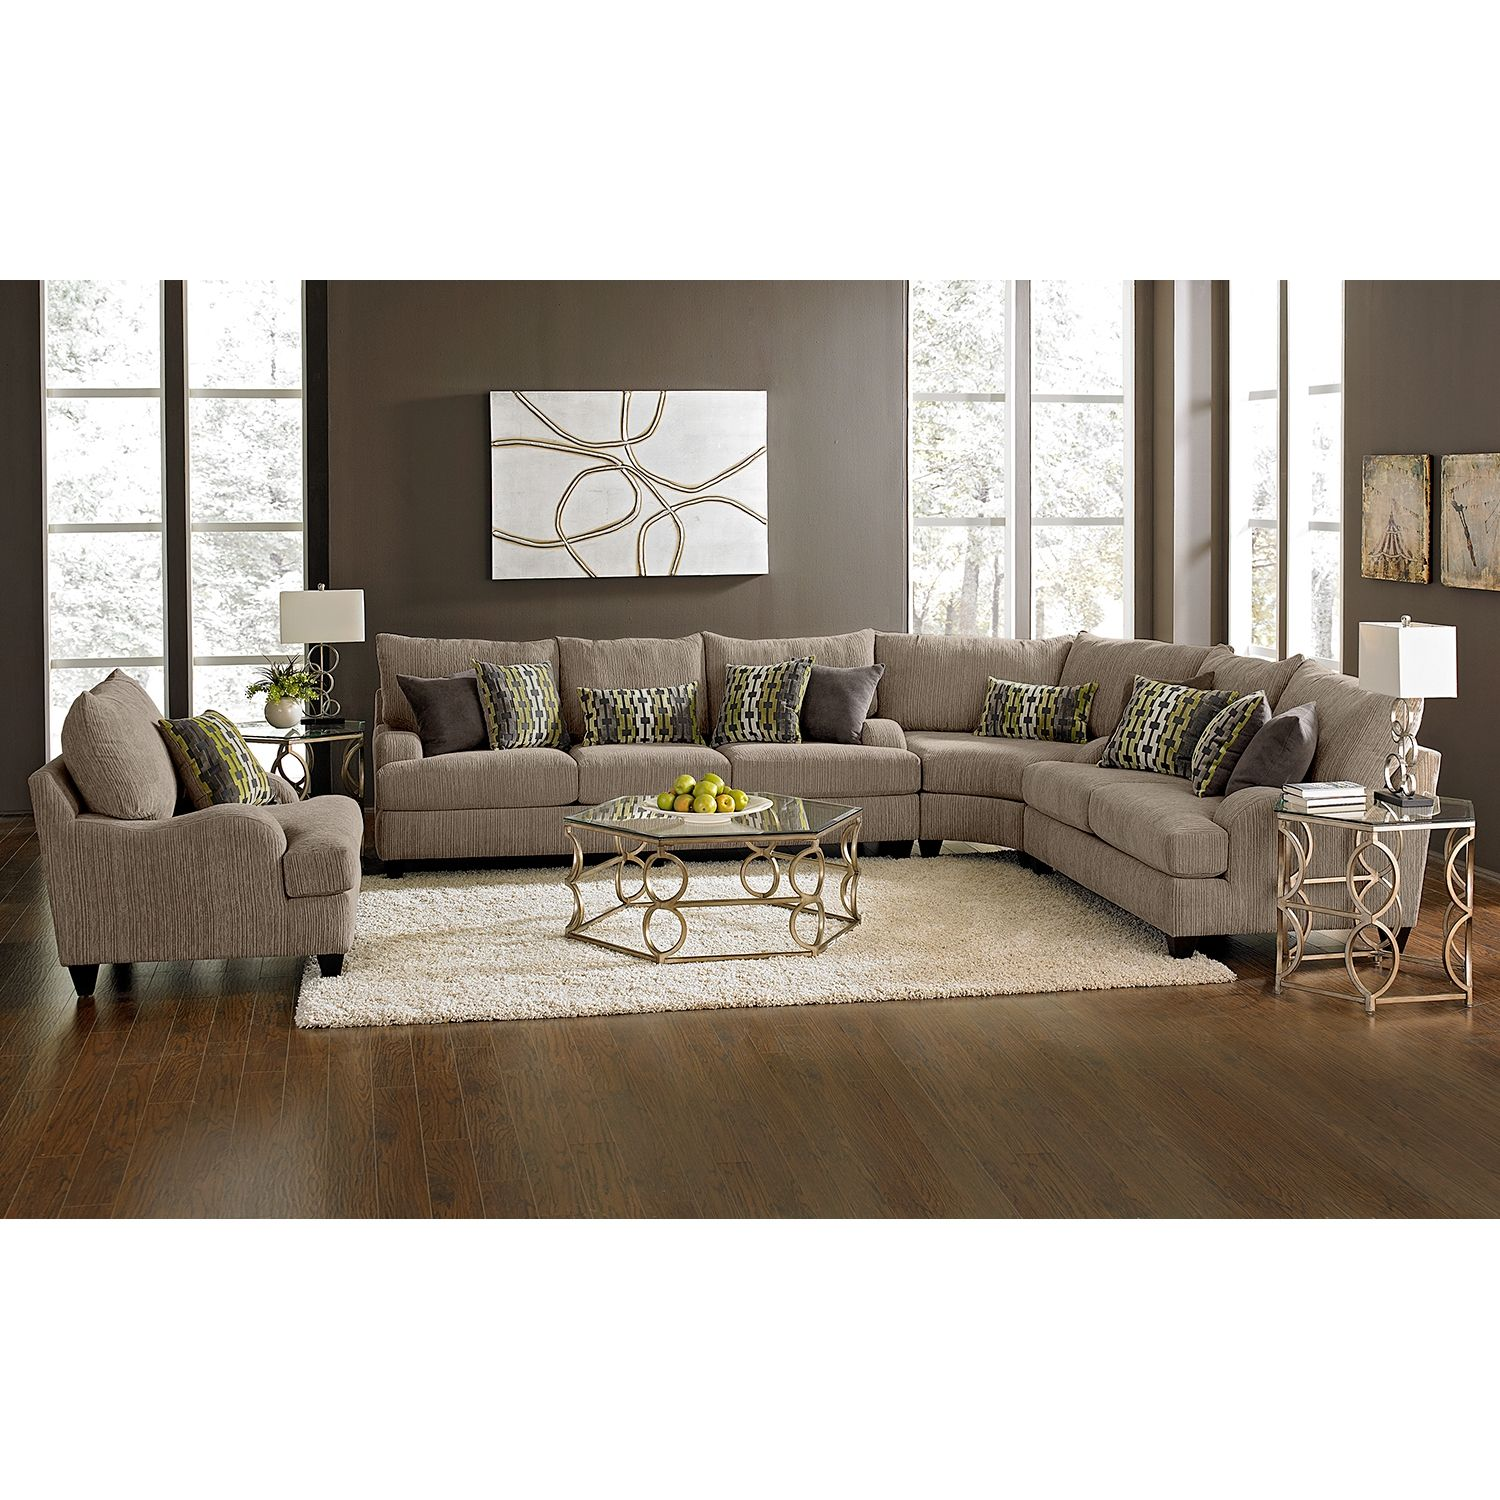 Santa monica ii upholstery 3 pc sectional value city furniture basement living roomsliving room